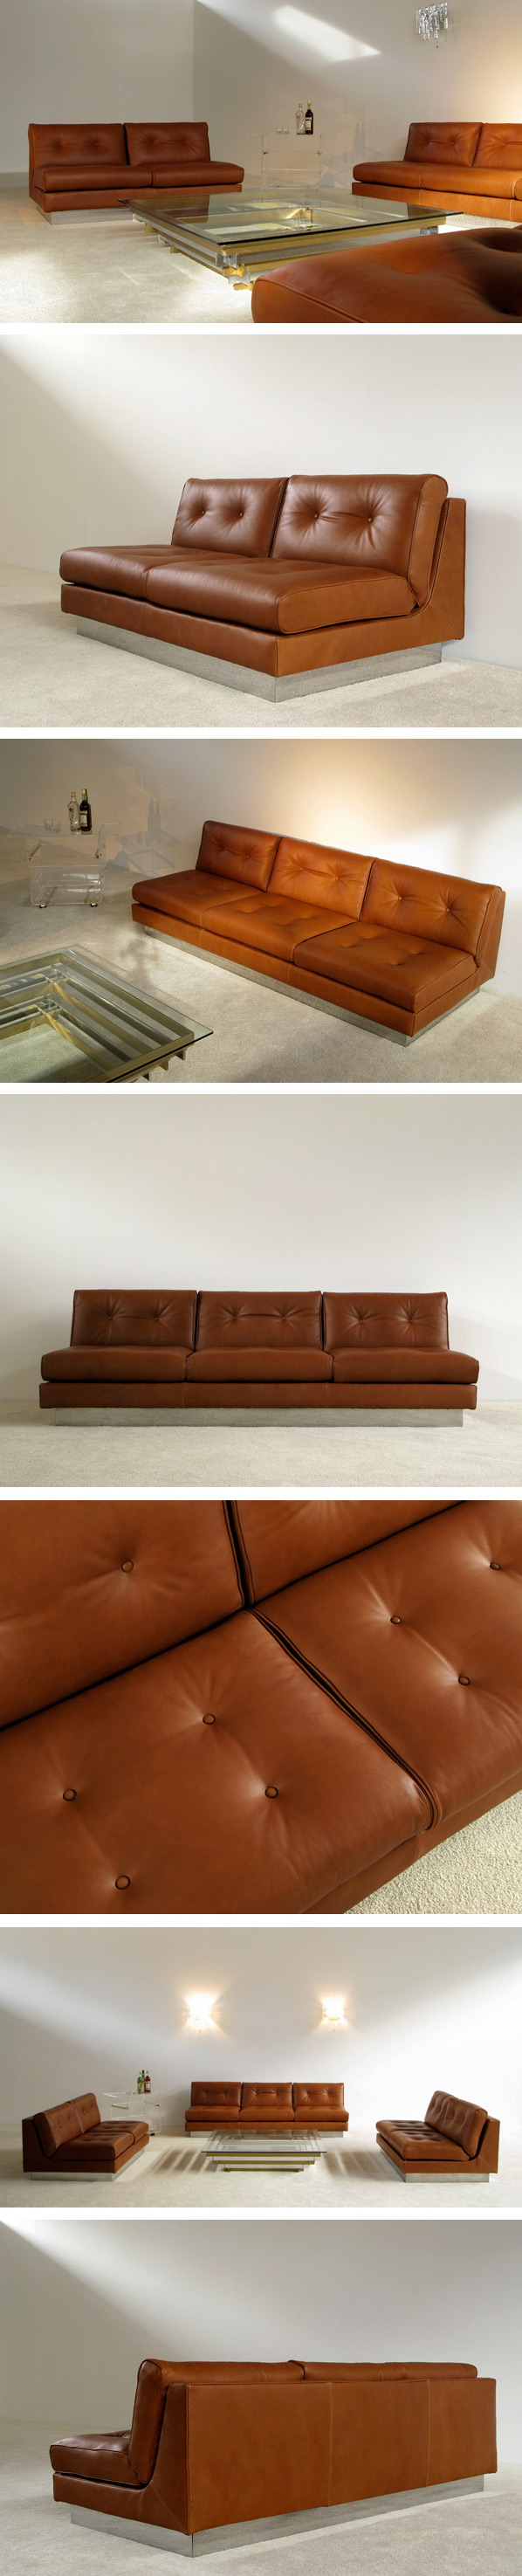 Cognac leather living scape Sofa 3 + 2 Pierre Folie Charpentier Large